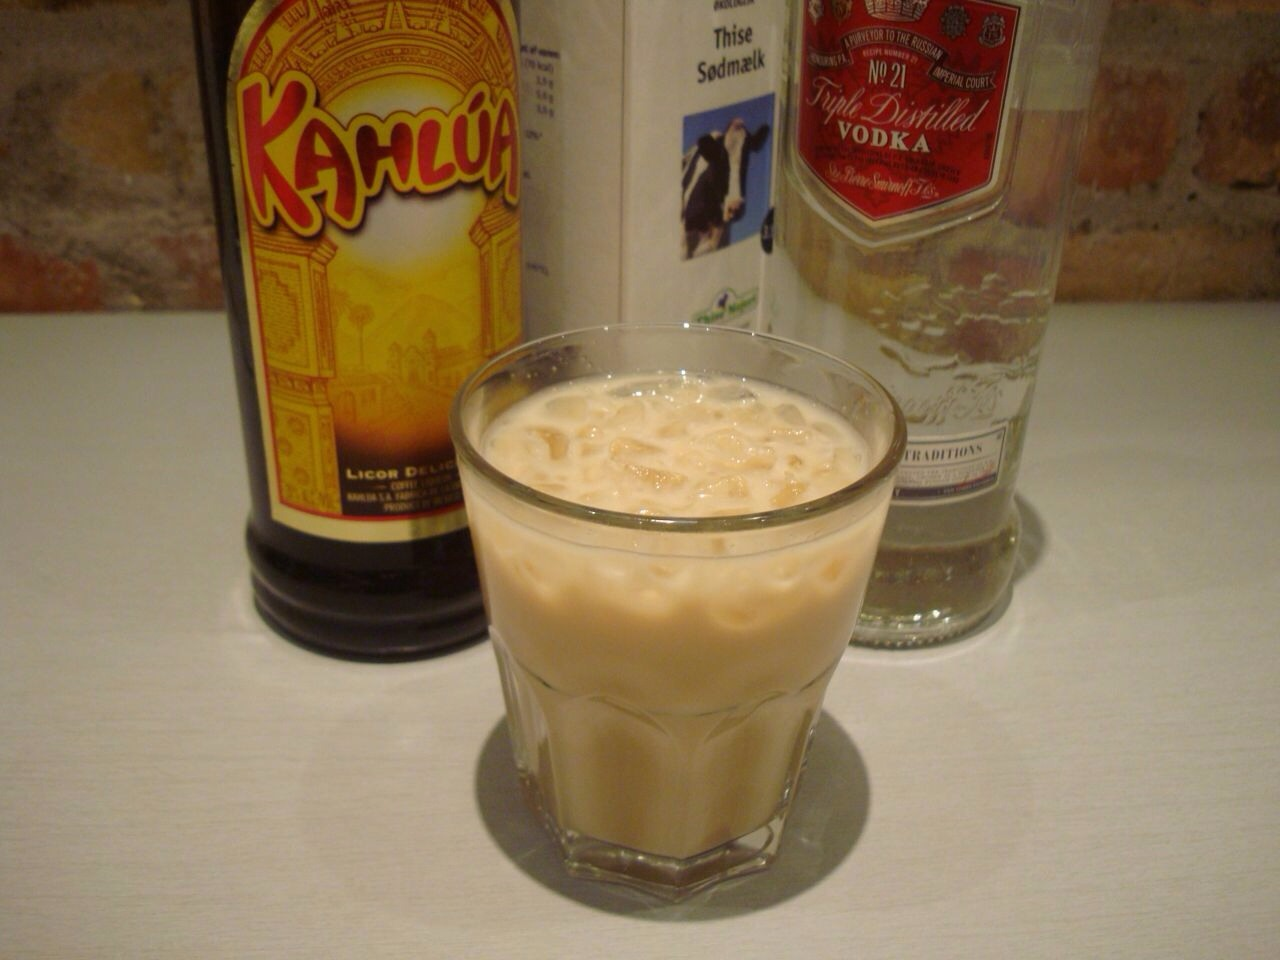 A little kahlua, a splash of vodka and some milk makes for a great after dinner drink. A good pair for brownies as well!